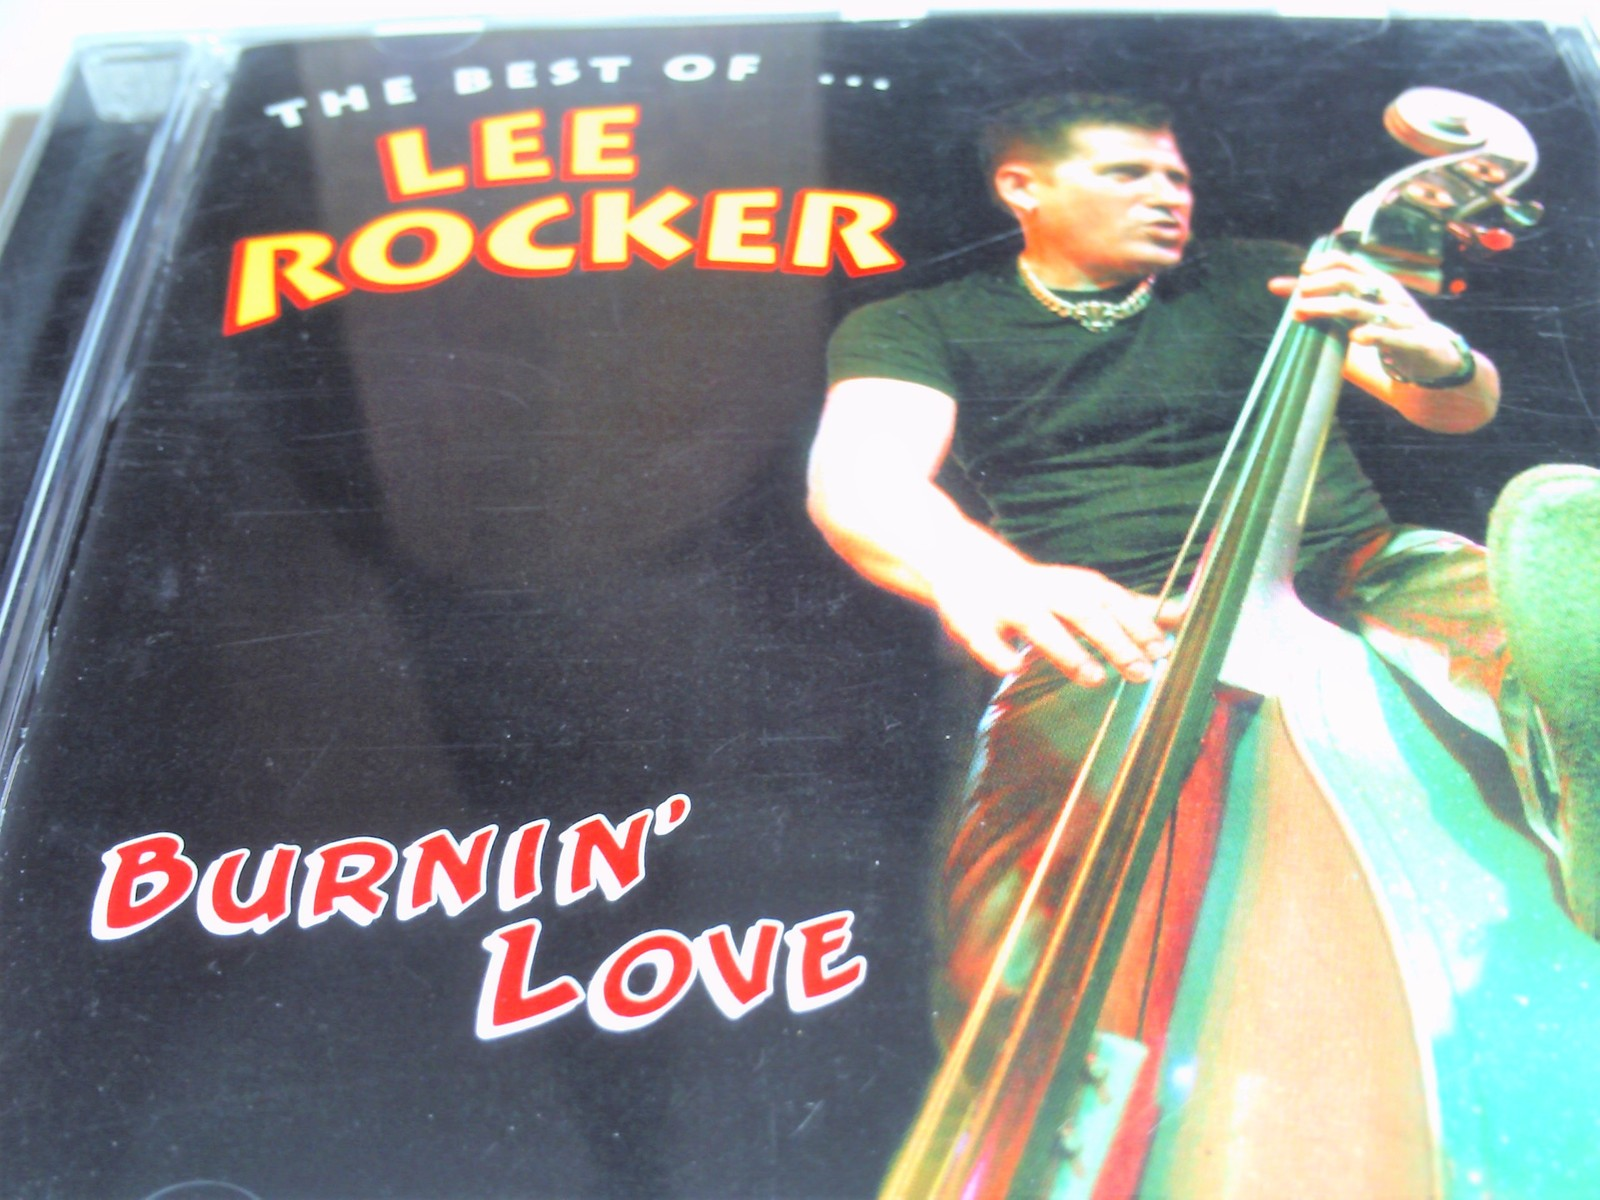 Lee Rocker Burnin' Love - The Best of Lee Rocker CD